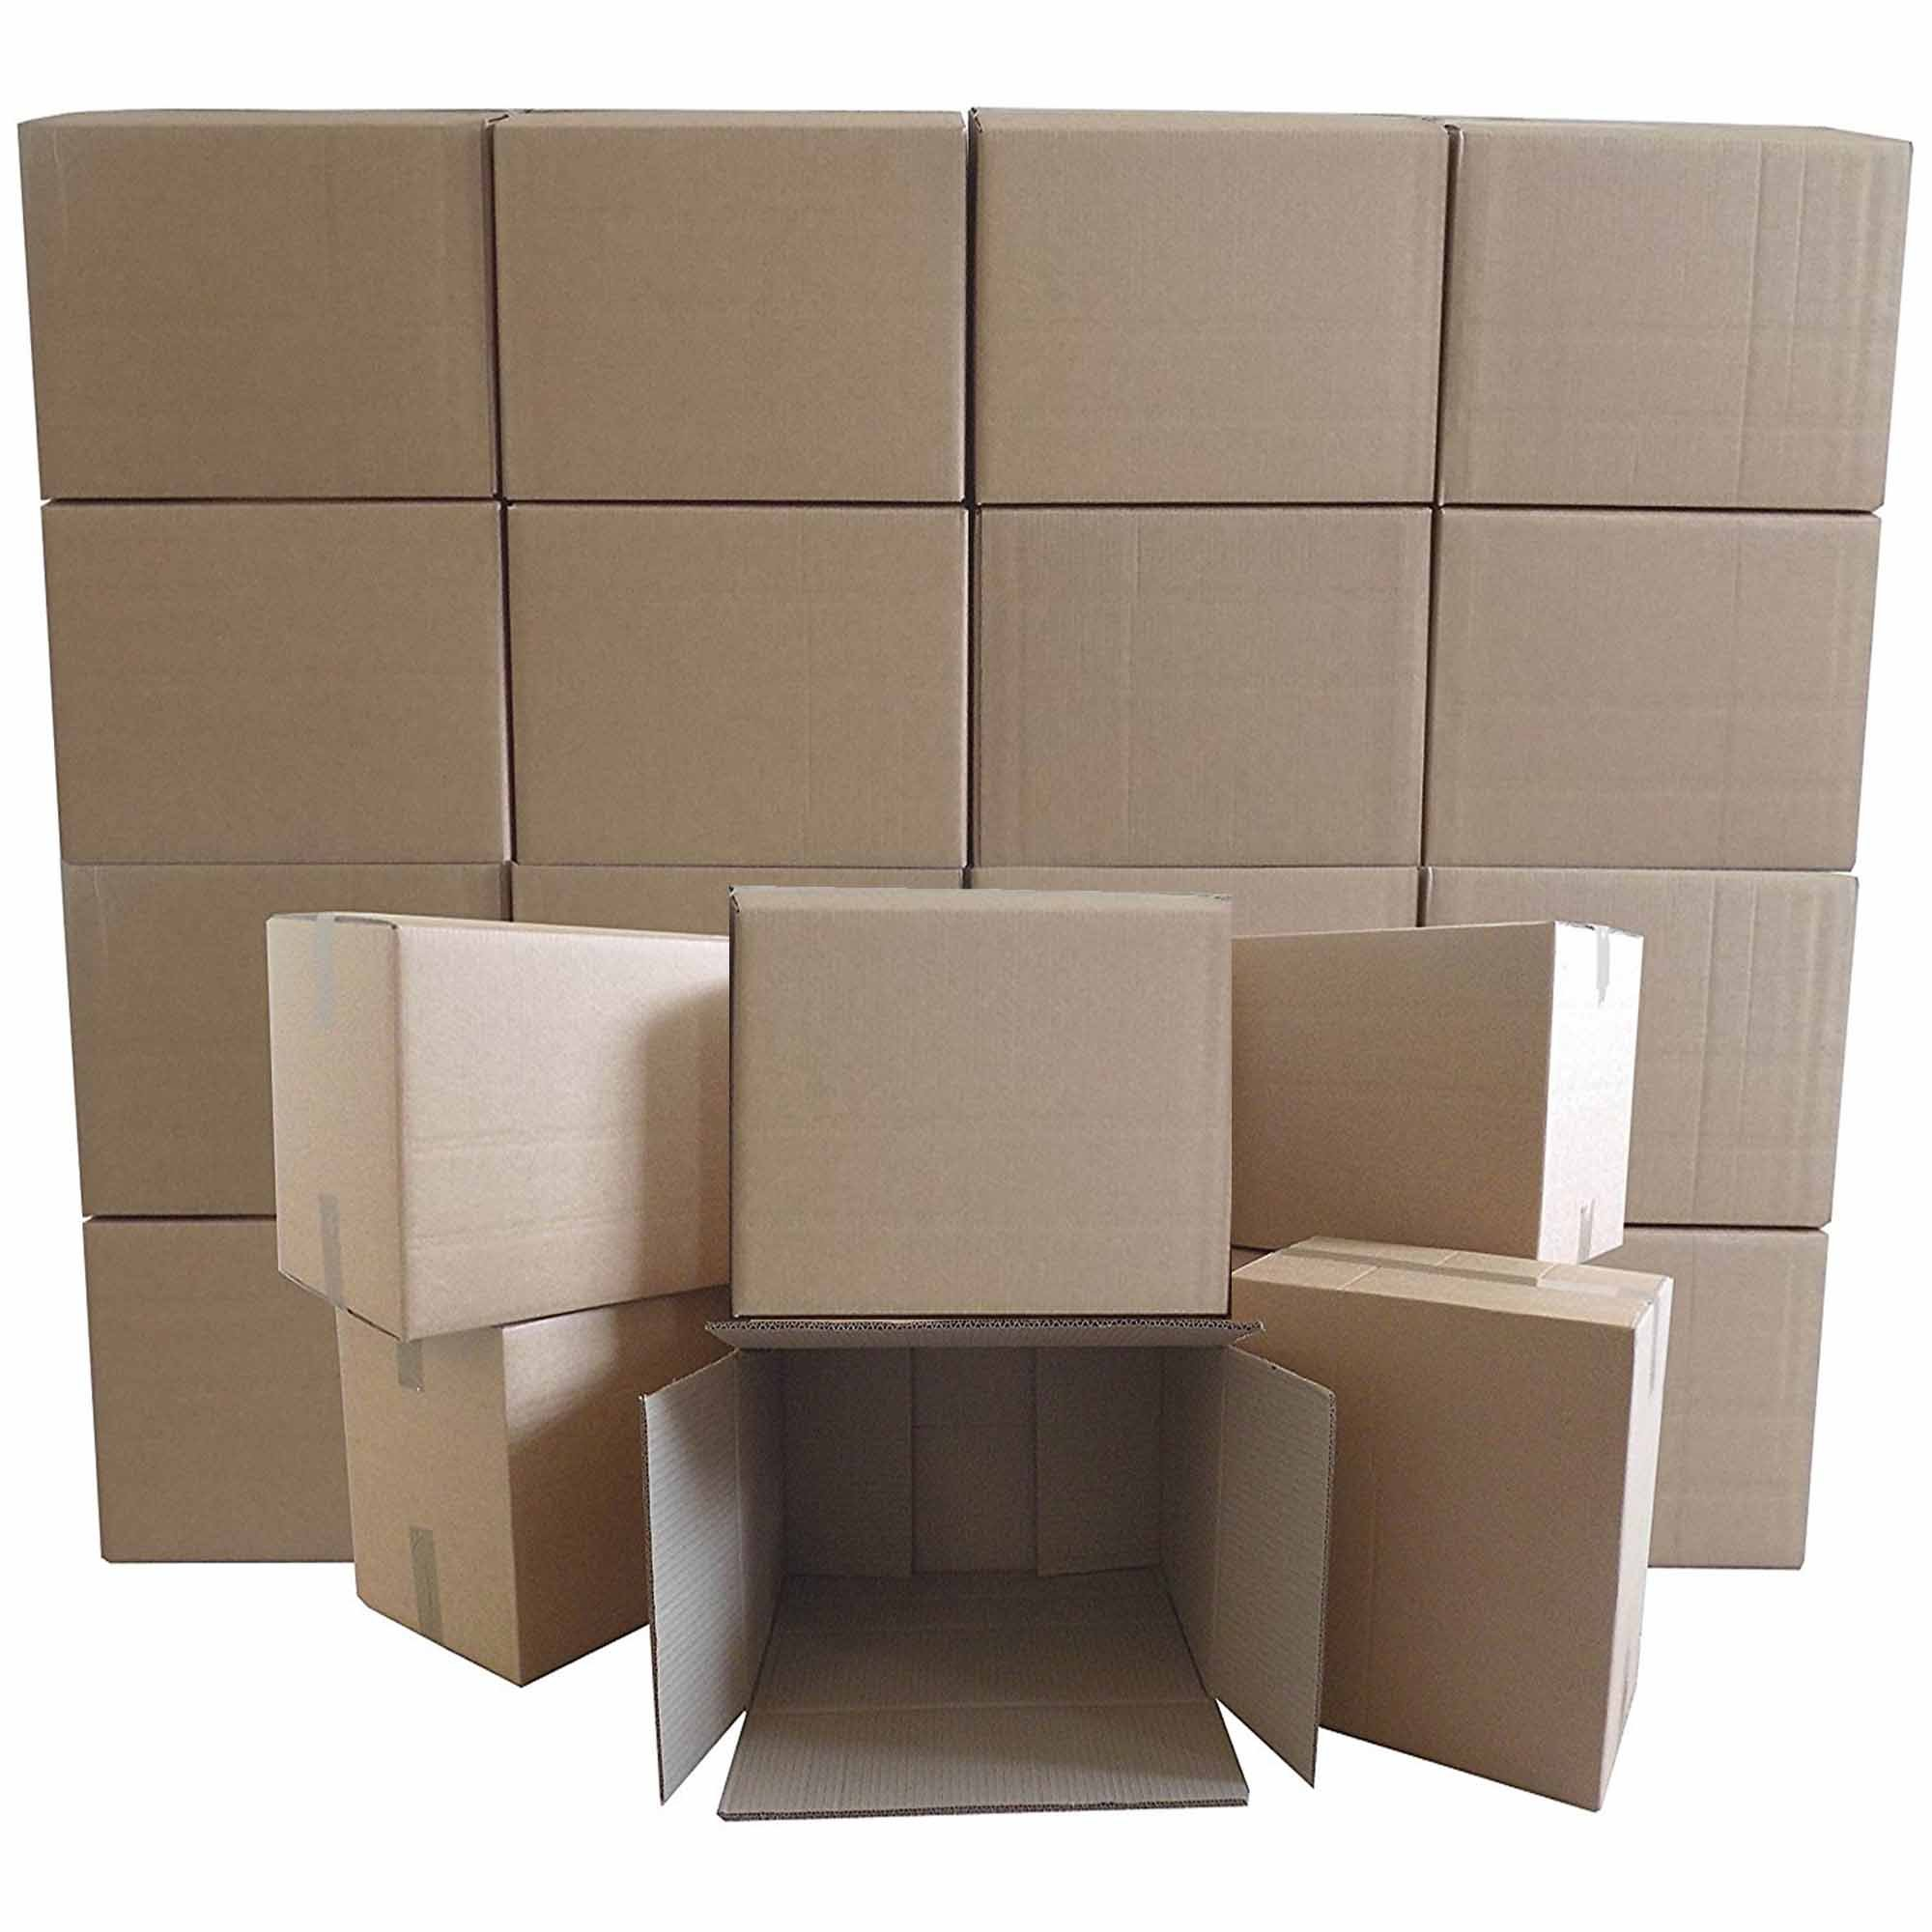 cardboard boxes. Black Bedroom Furniture Sets. Home Design Ideas